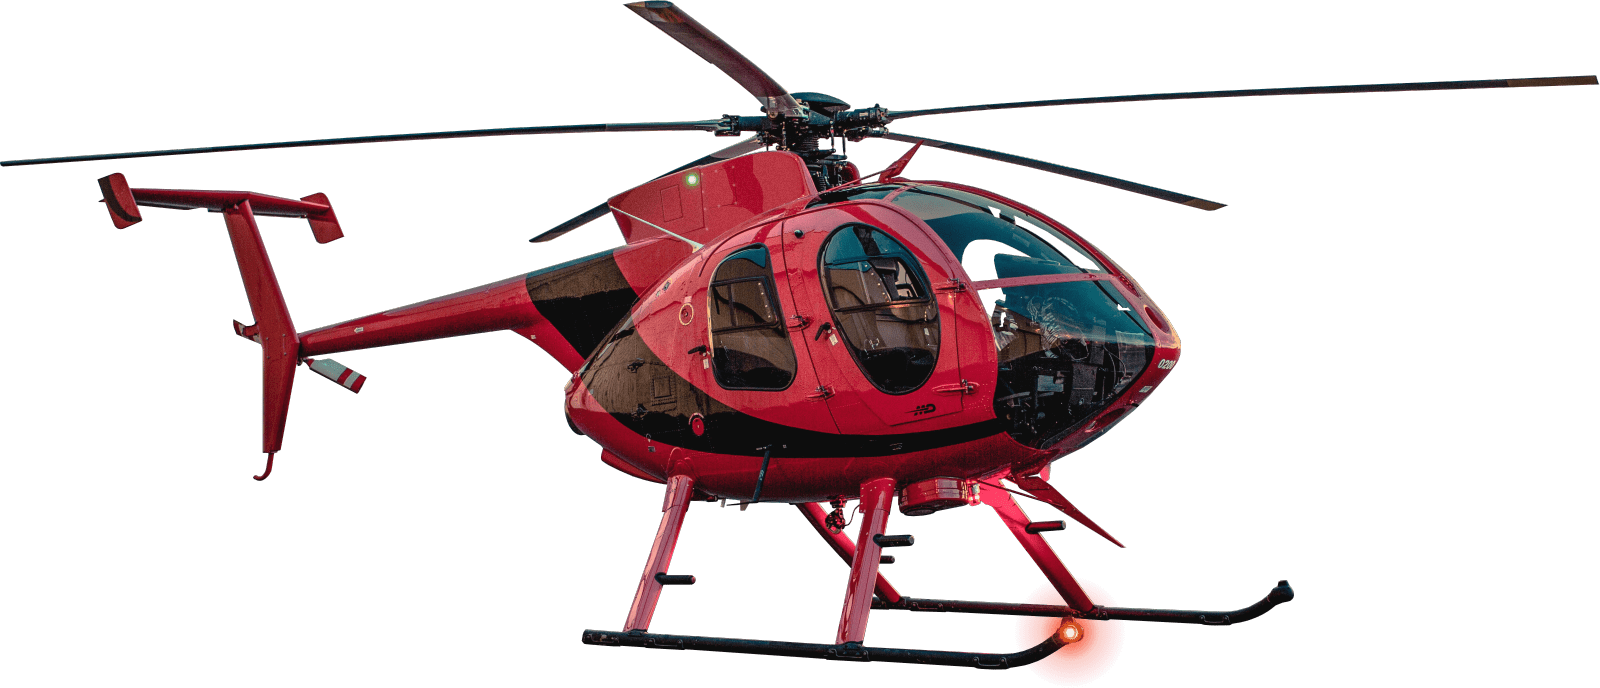 Red flying helicopter